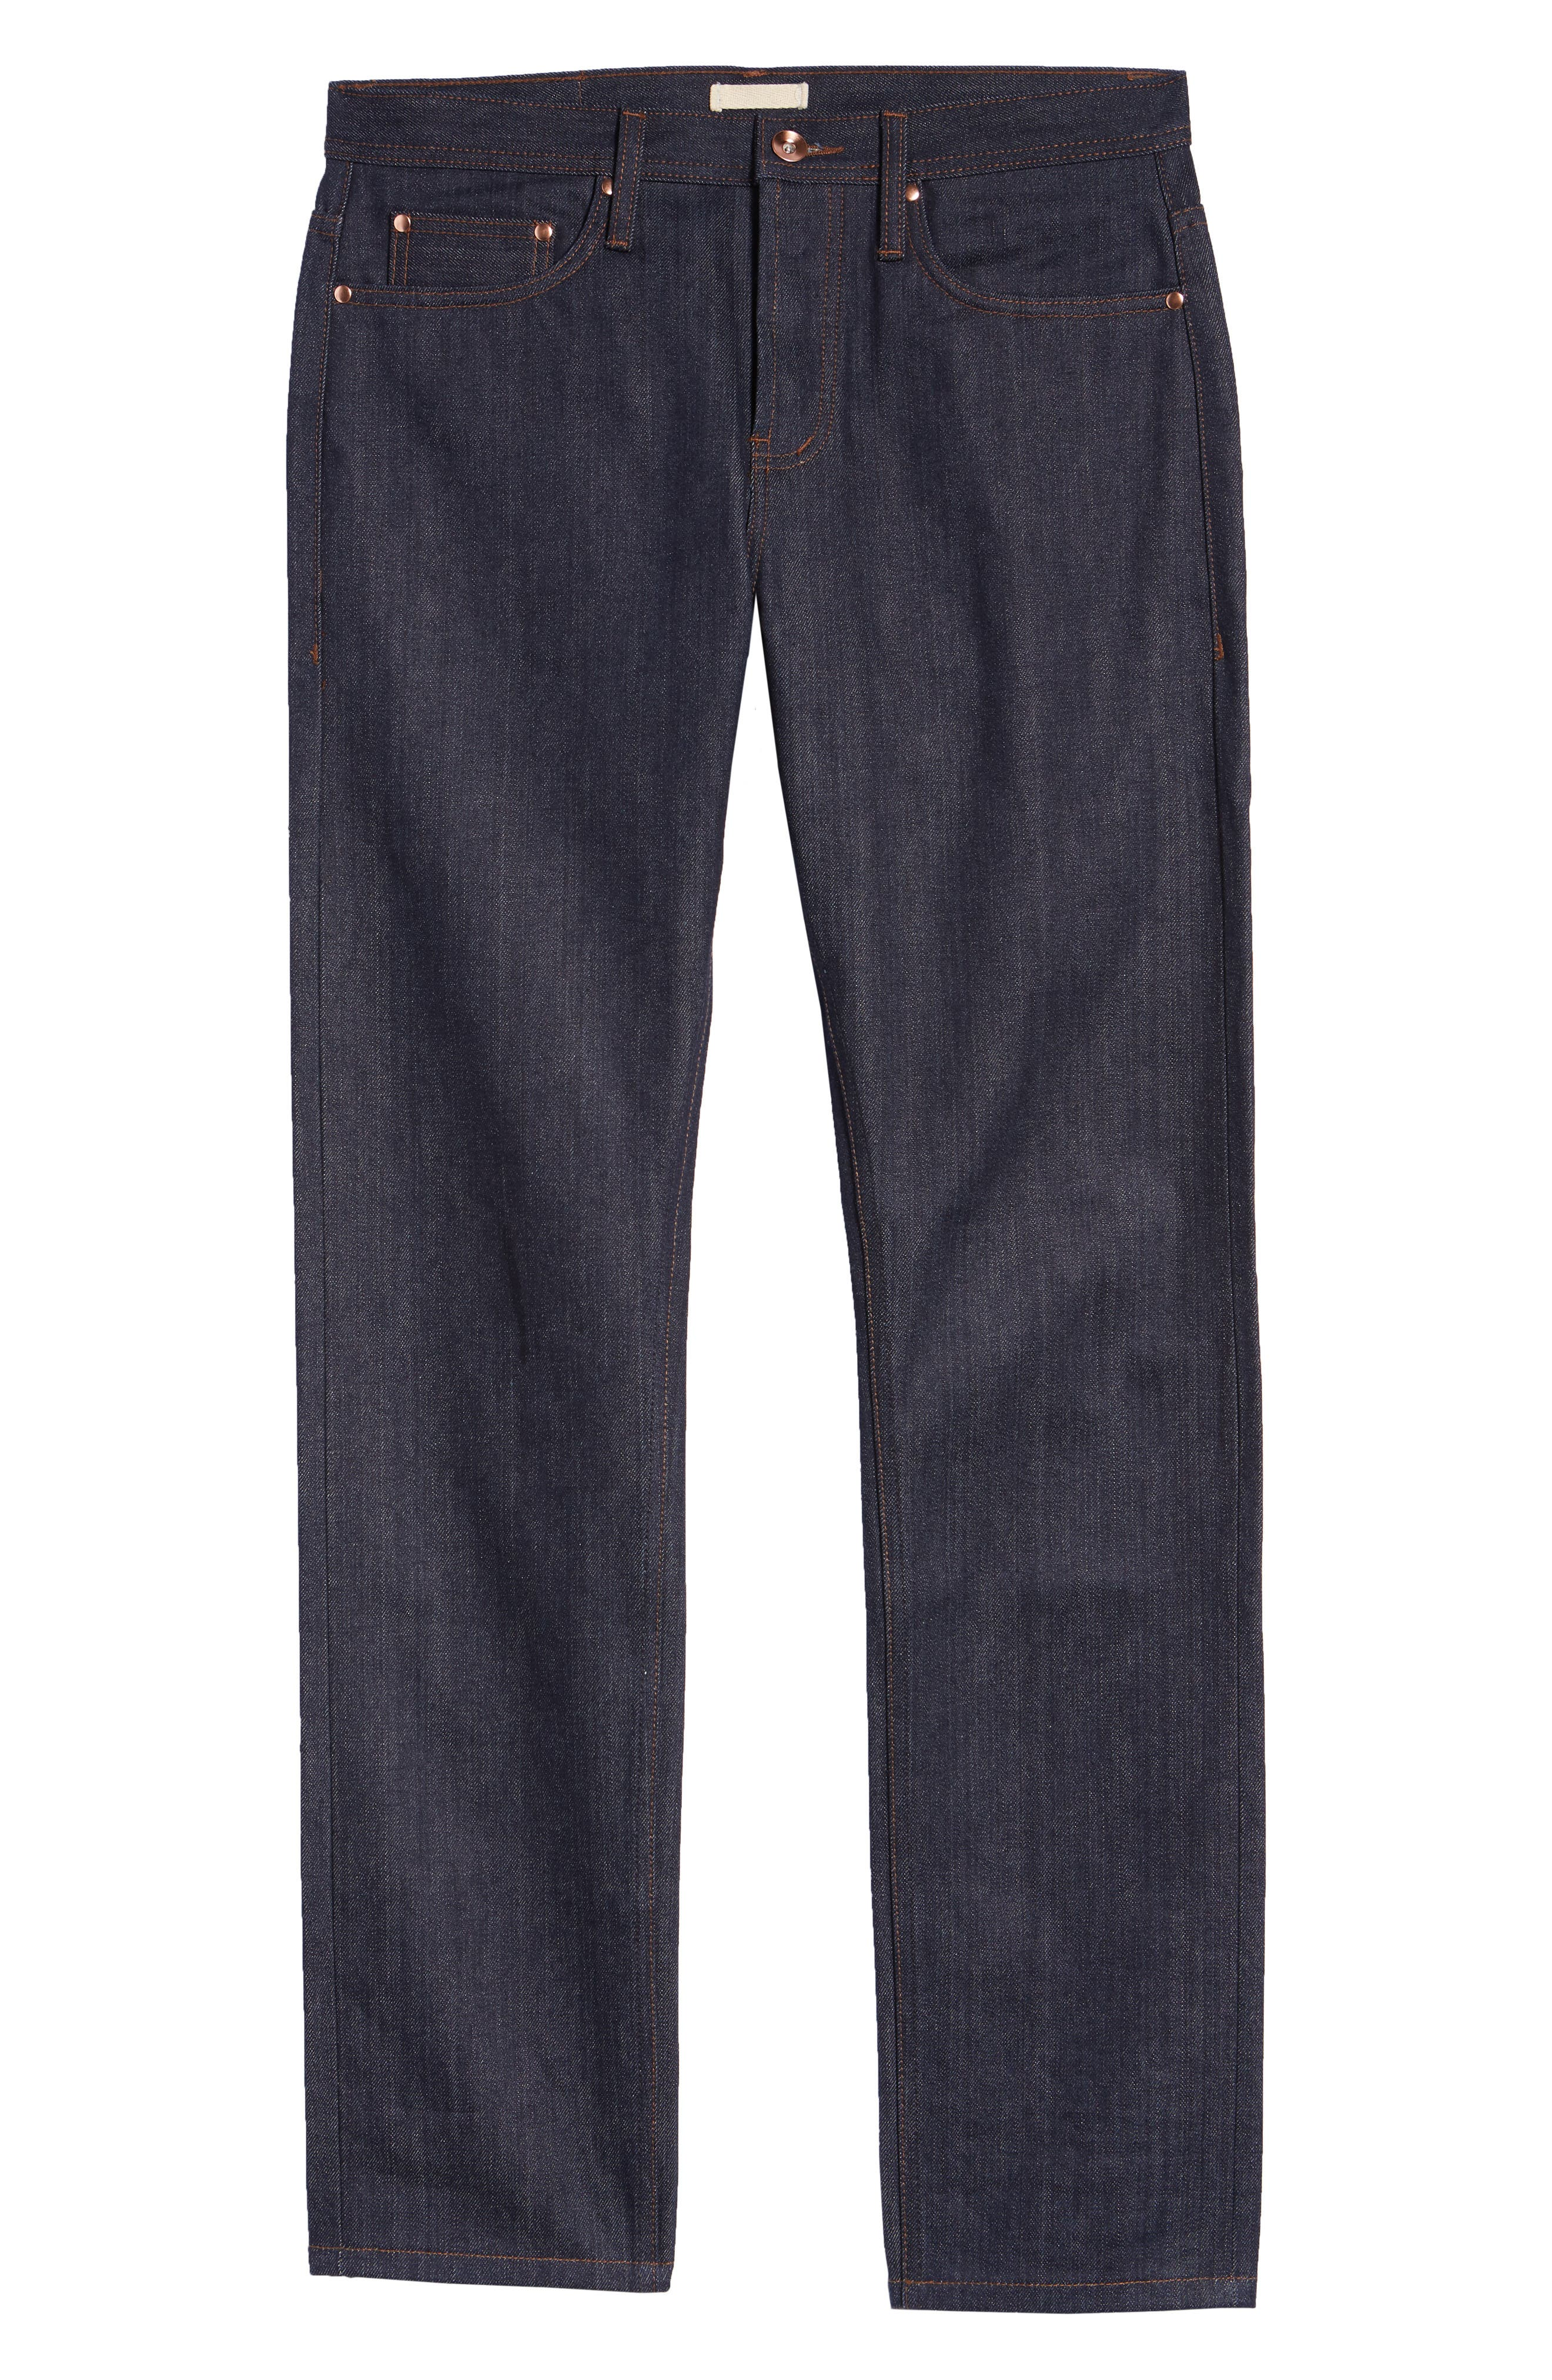 UB201 Tapered Fit Raw Selvedge Jeans,                             Alternate thumbnail 7, color,                             INDIGO